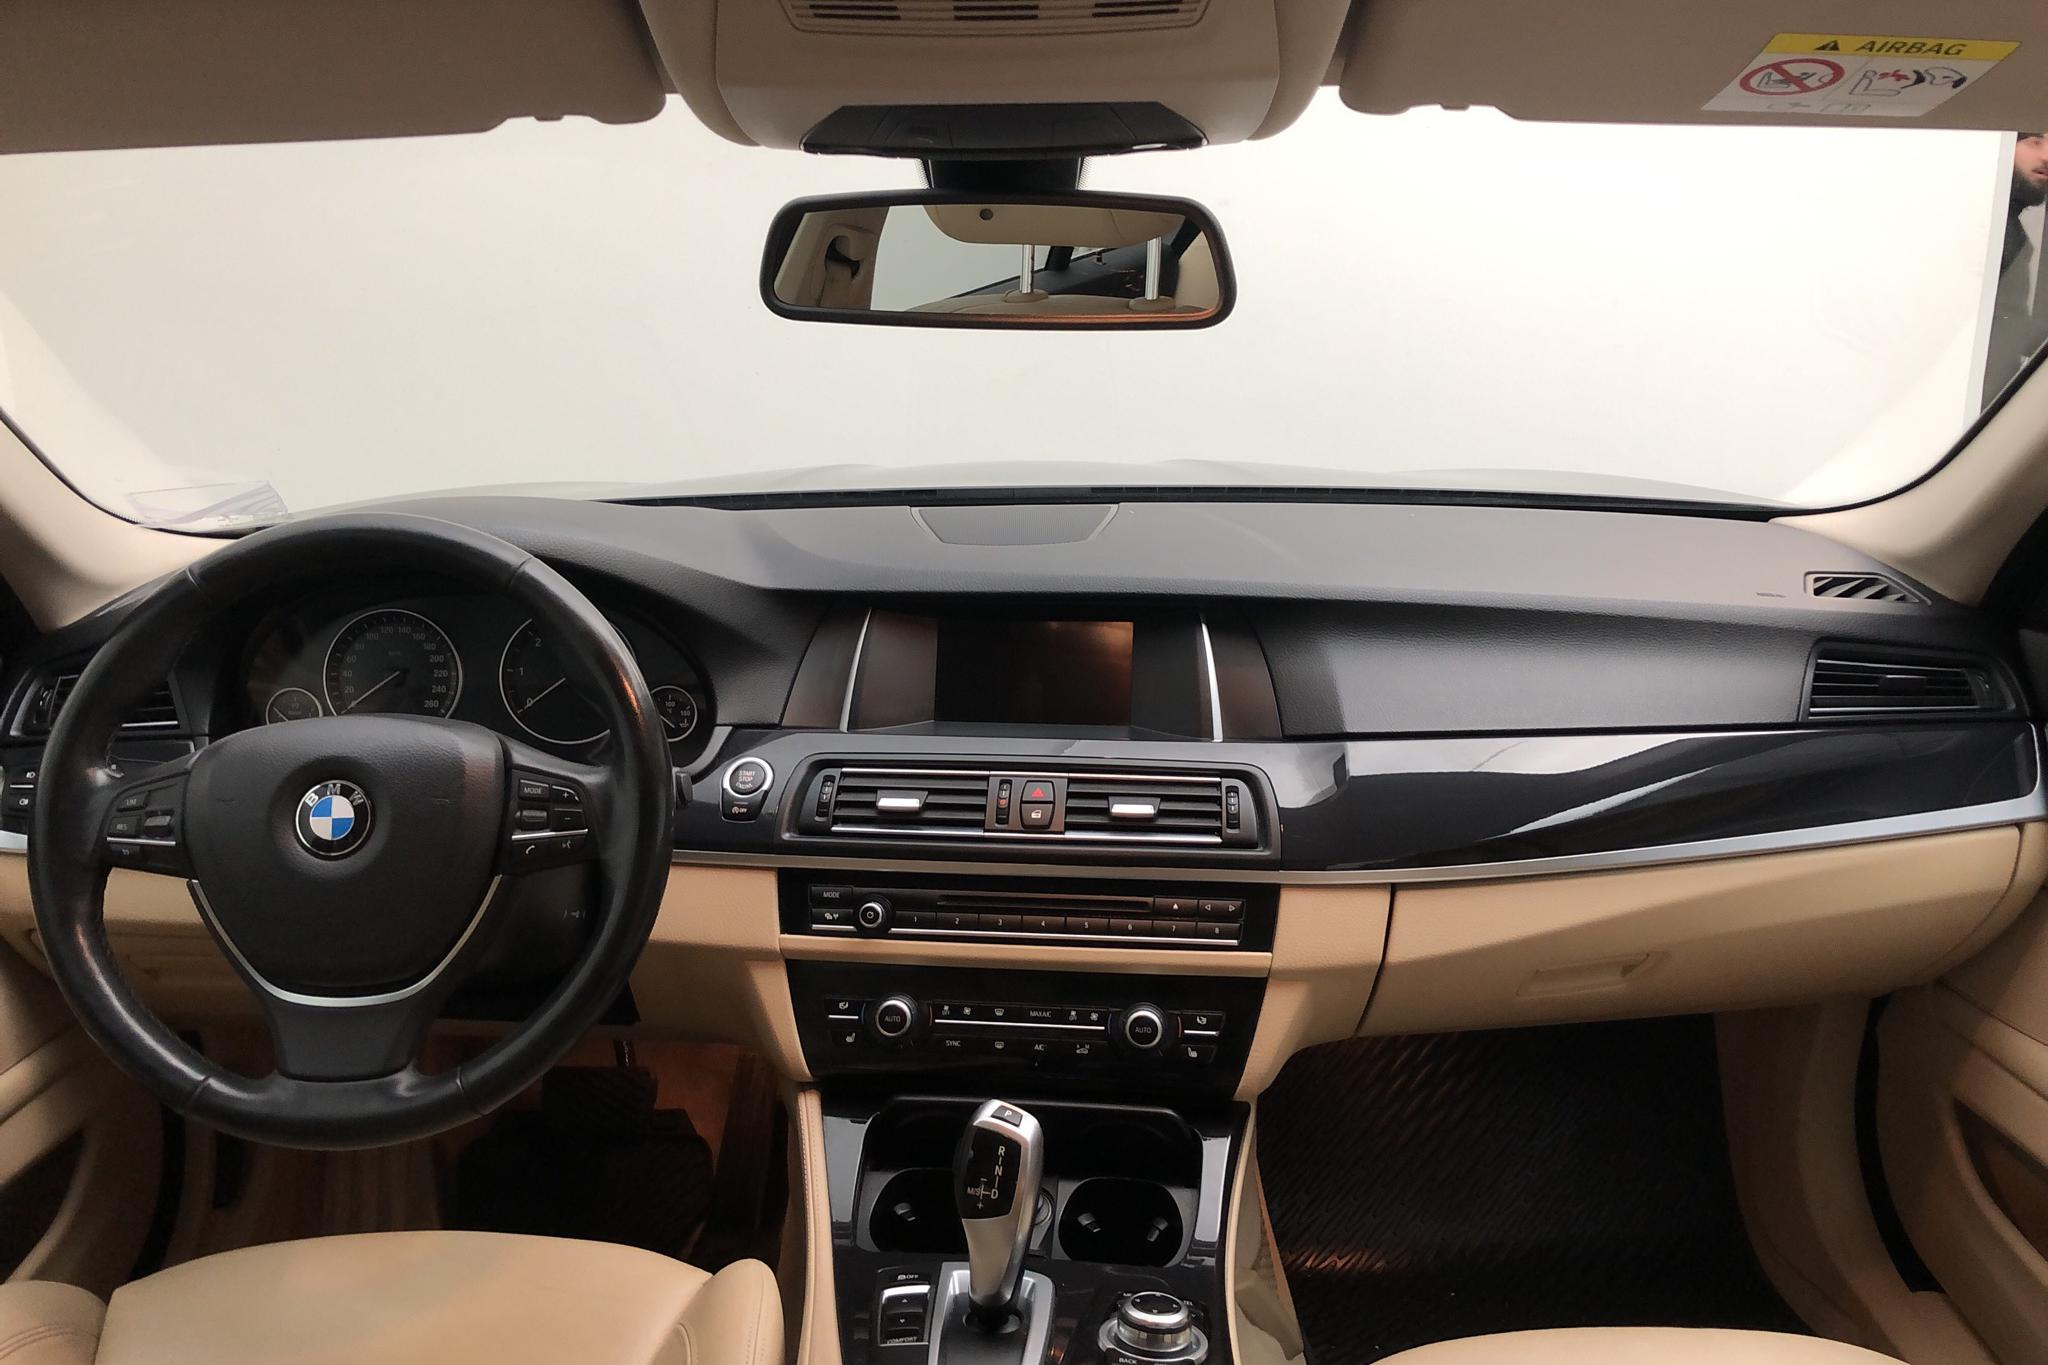 BMW 520d Touring, F11 (184hk) - 195 610 km - Automatic - black - 2014